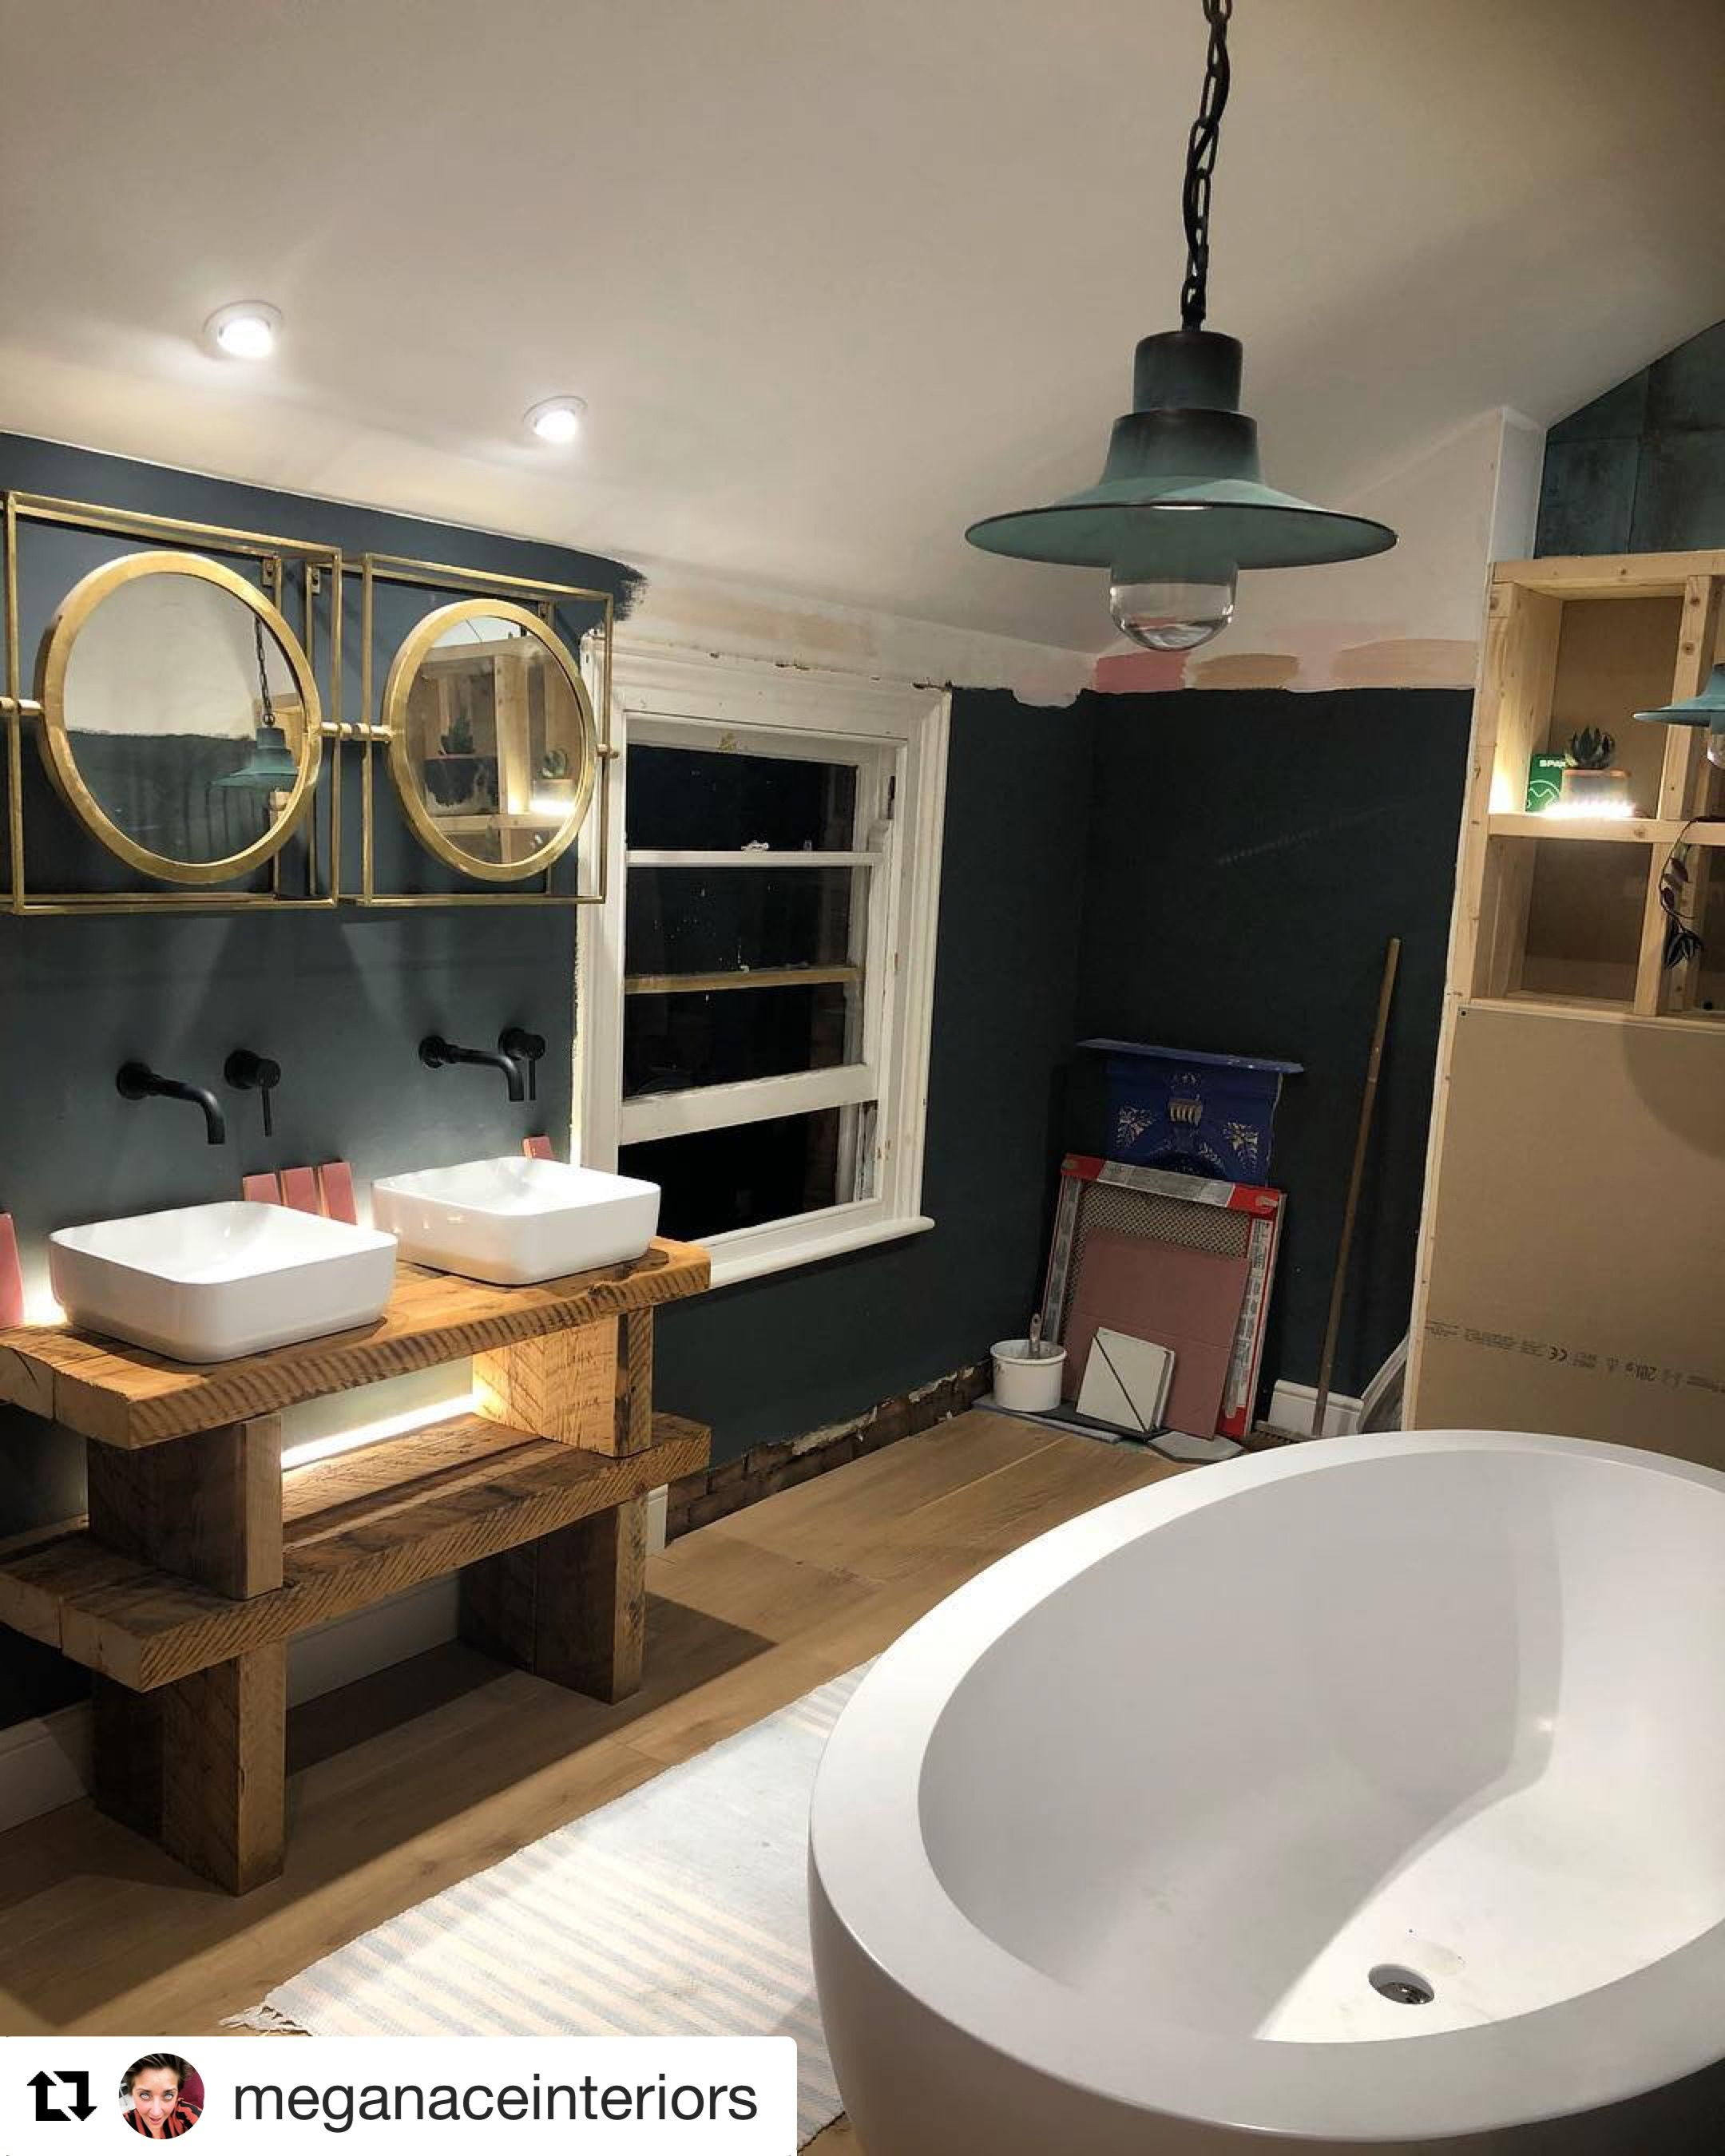 This Wonderful Bathroom Was Shared With Us By Victoriaplum Com Customer Meganaceinteriors Those Por With Images Cheap Bathroom Faucets Bathrooms Remodel Porthole Mirror